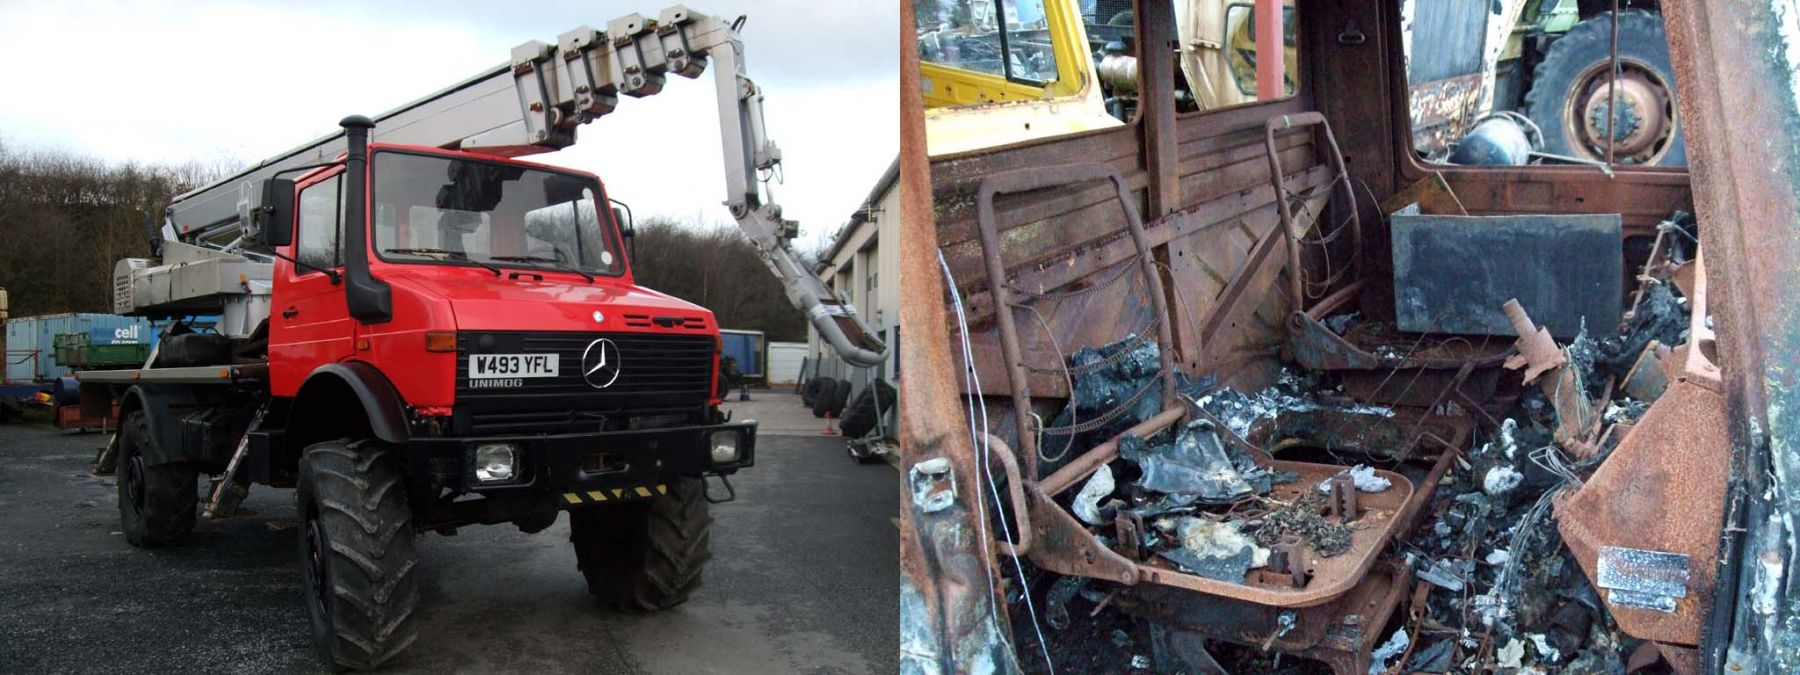 Cab Refurbishment After Fiery Blaze